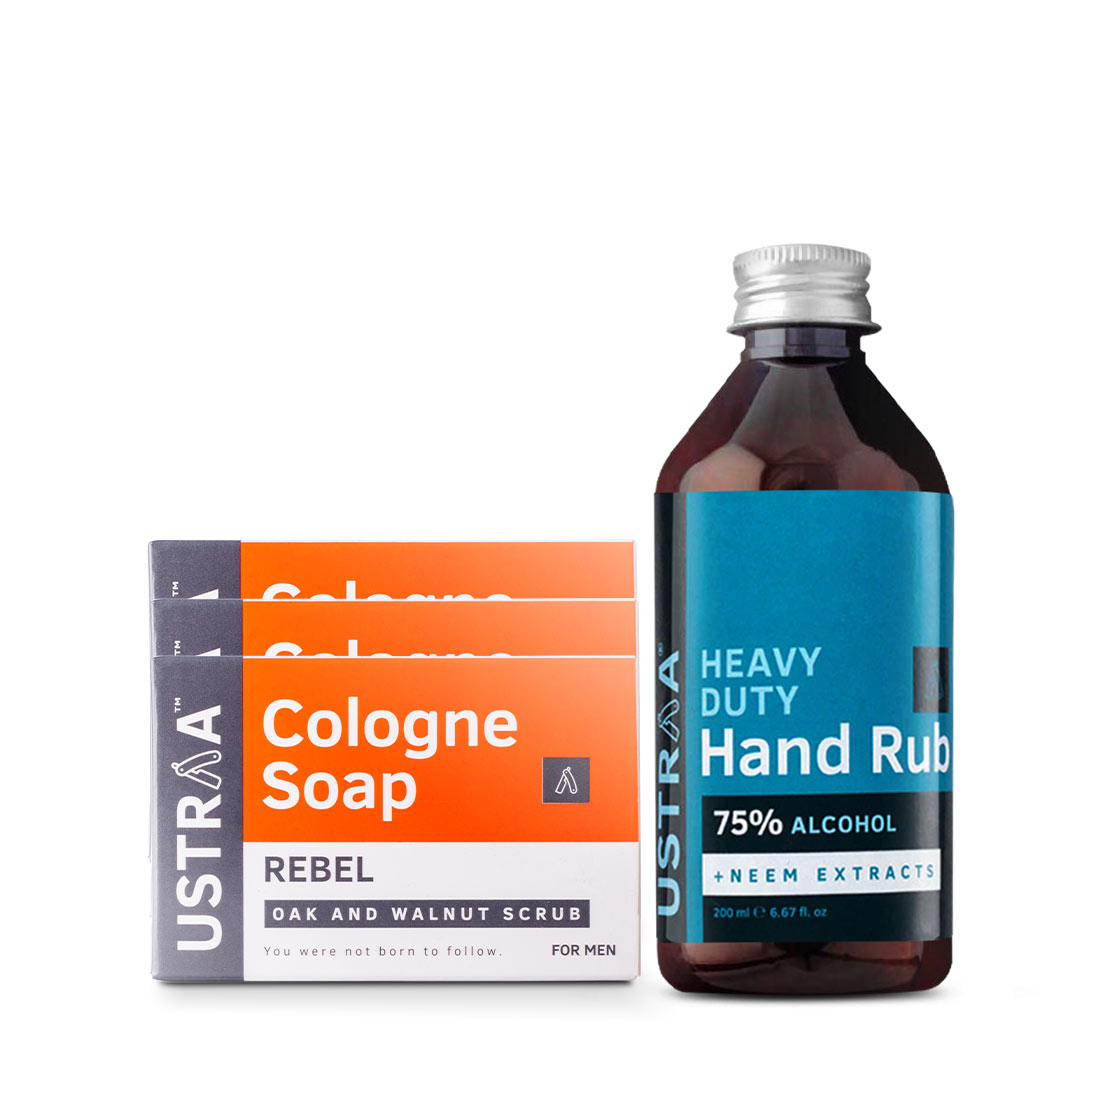 Cologne Soap - Rebel - Set of 3 and Hand Rub - 200 ml